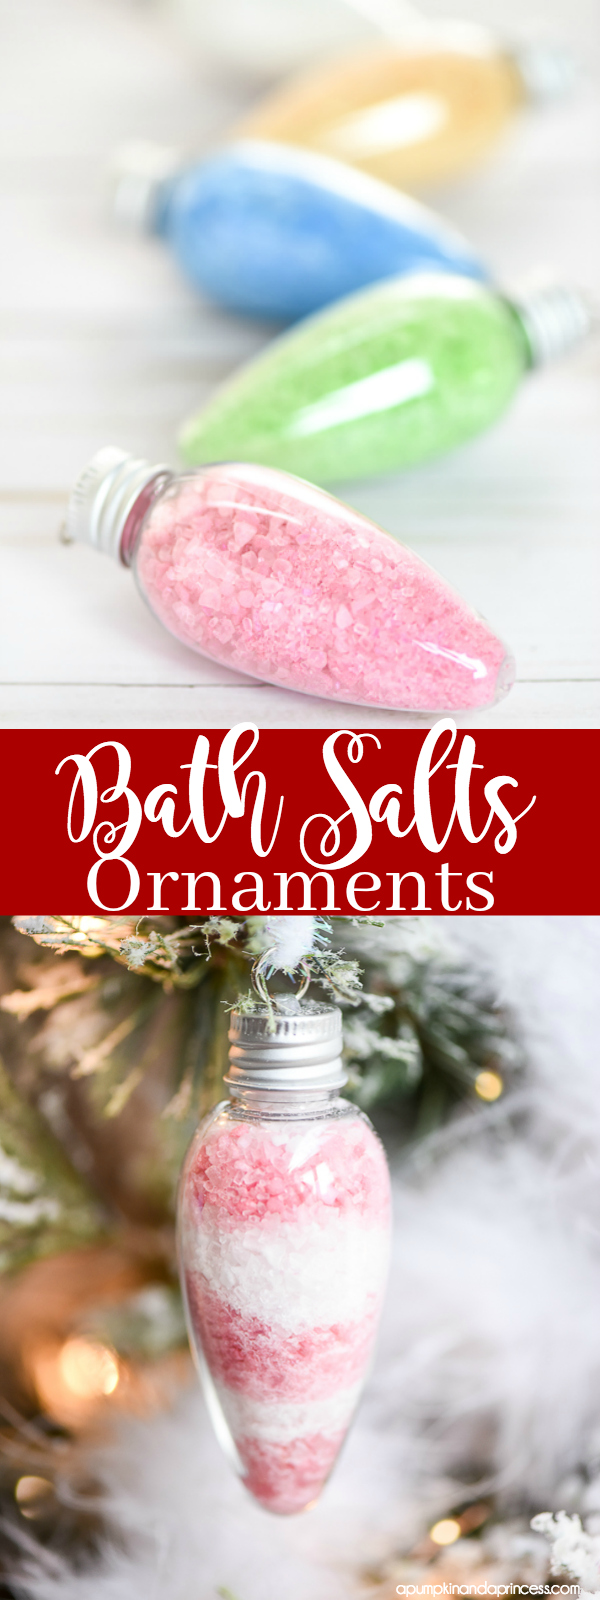 Bath Salts Ornaments